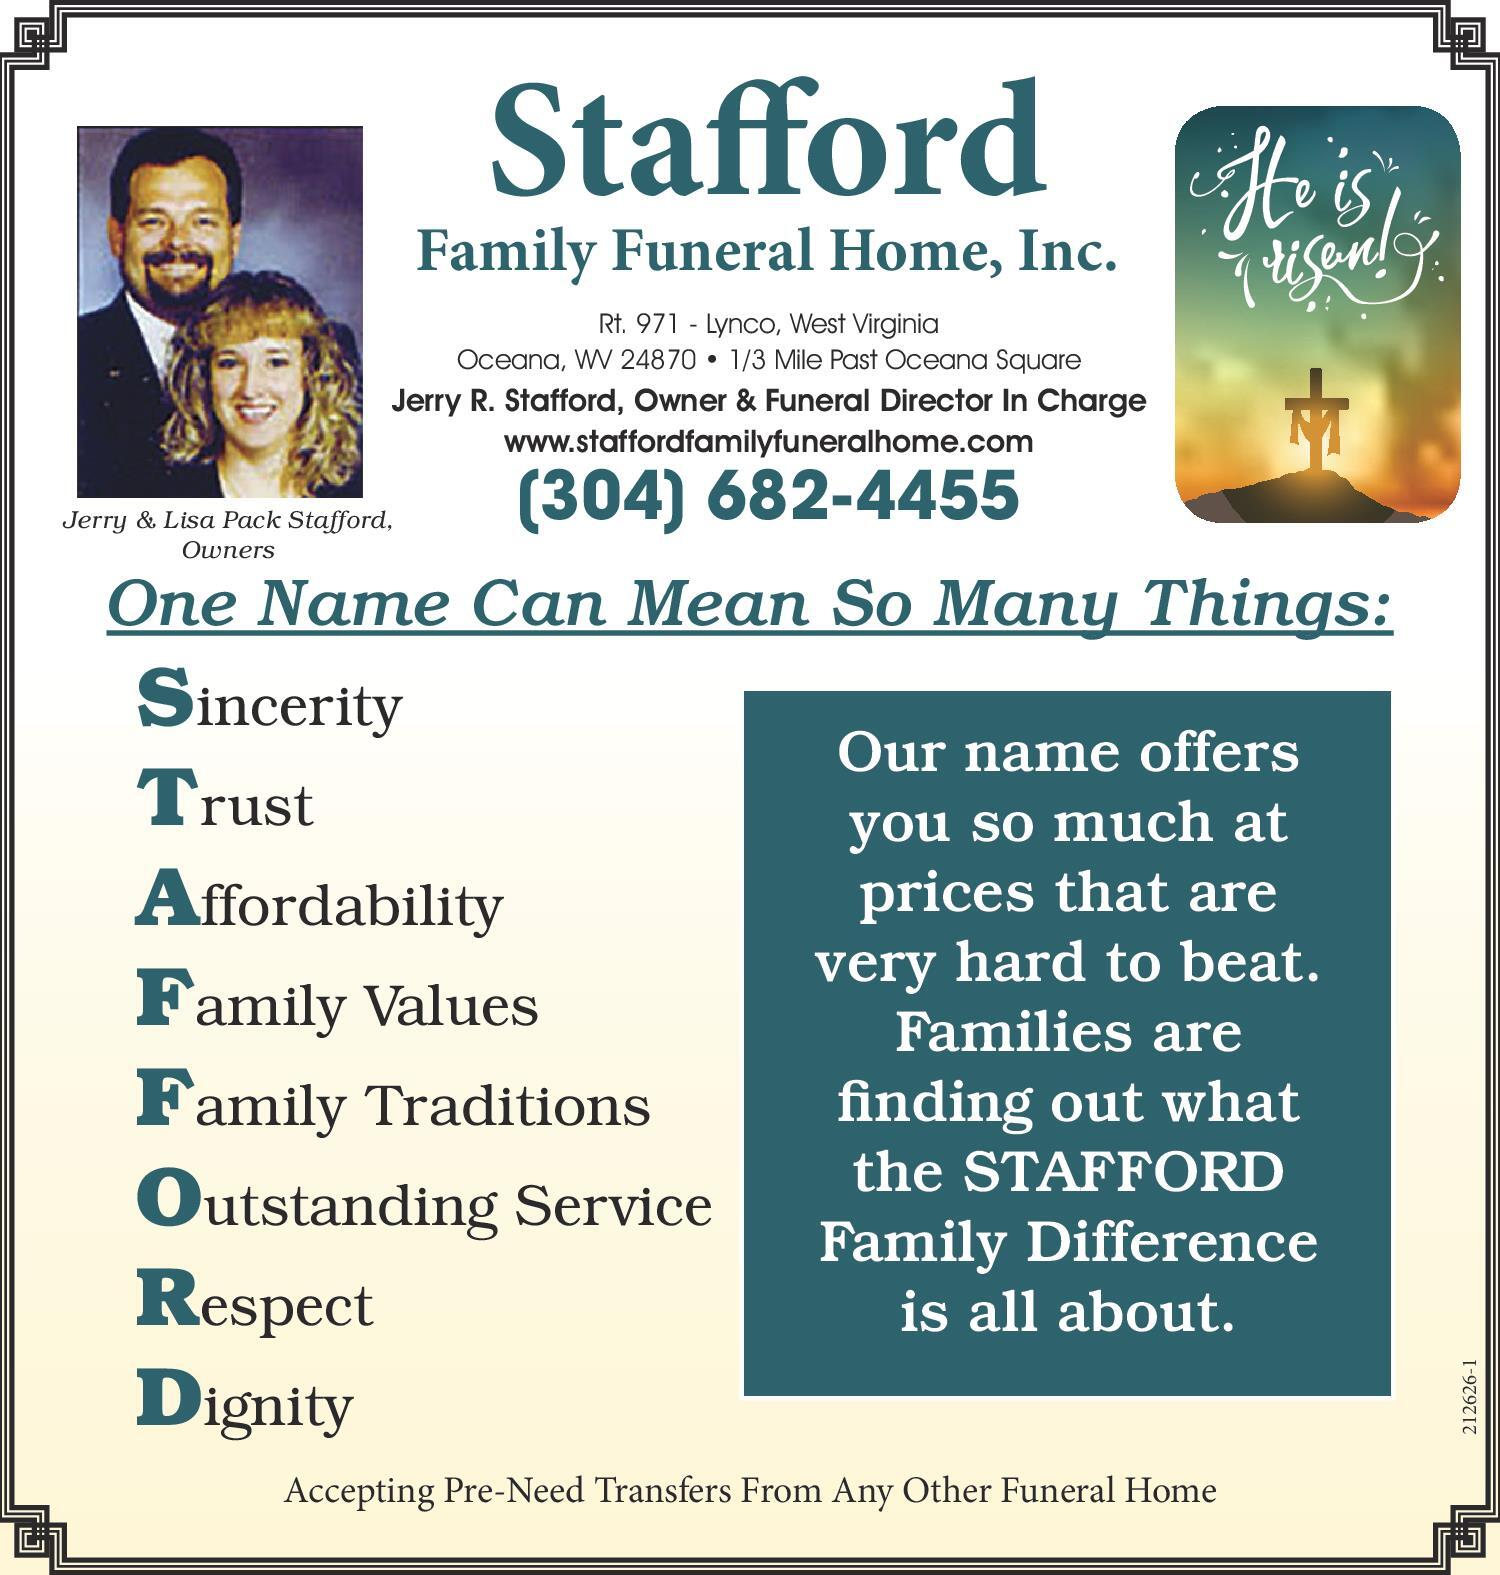 Stafford Family Funeral Home Inc